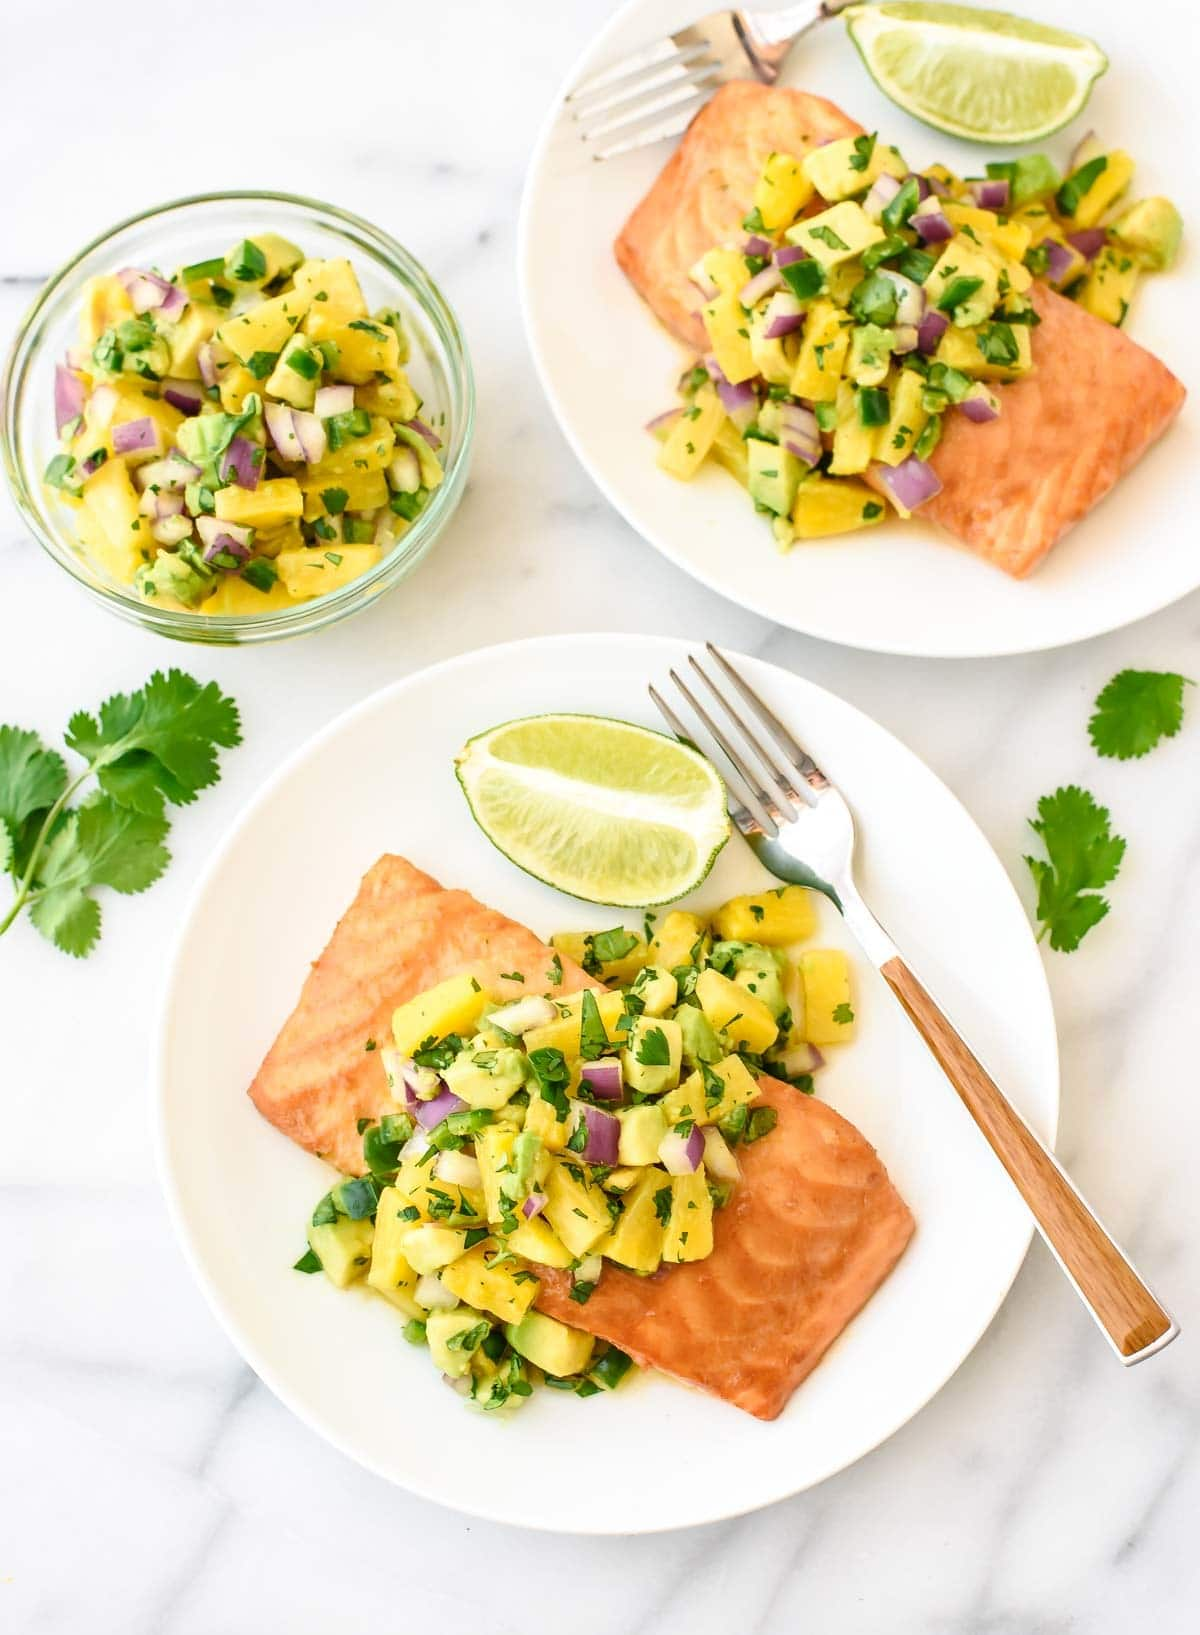 Easy Pineapple Glazed Salmon with Avocado Salsa. Healthy and flavorful!